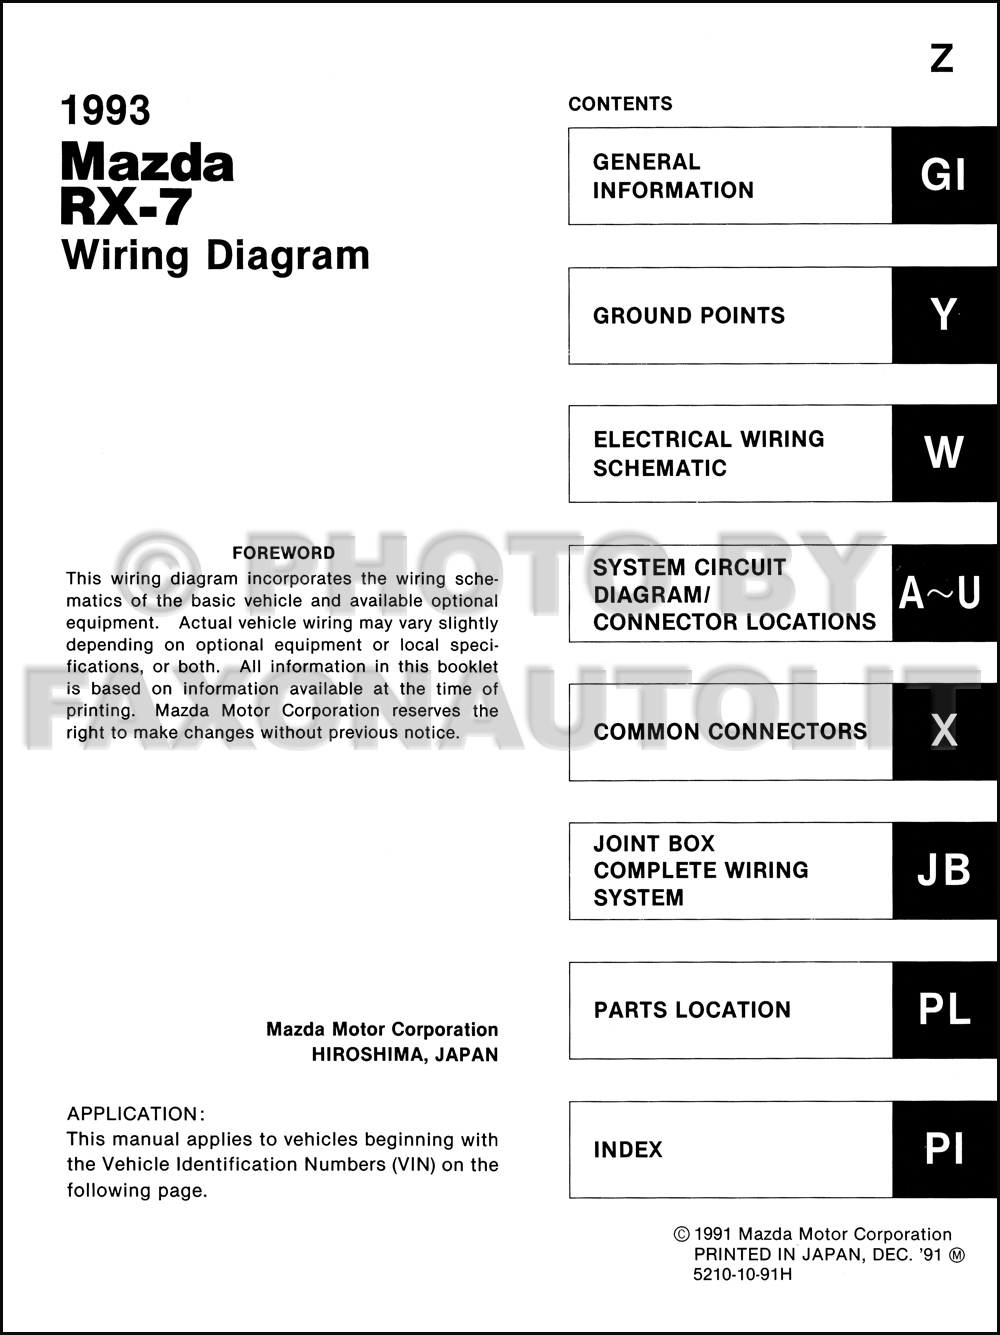 1993 rx7 wiring diagram 1993 rx7 wiring diagram also 1993 mazda 1993 rx7 wiring diagram 1993 wiring diagrams for car or truck